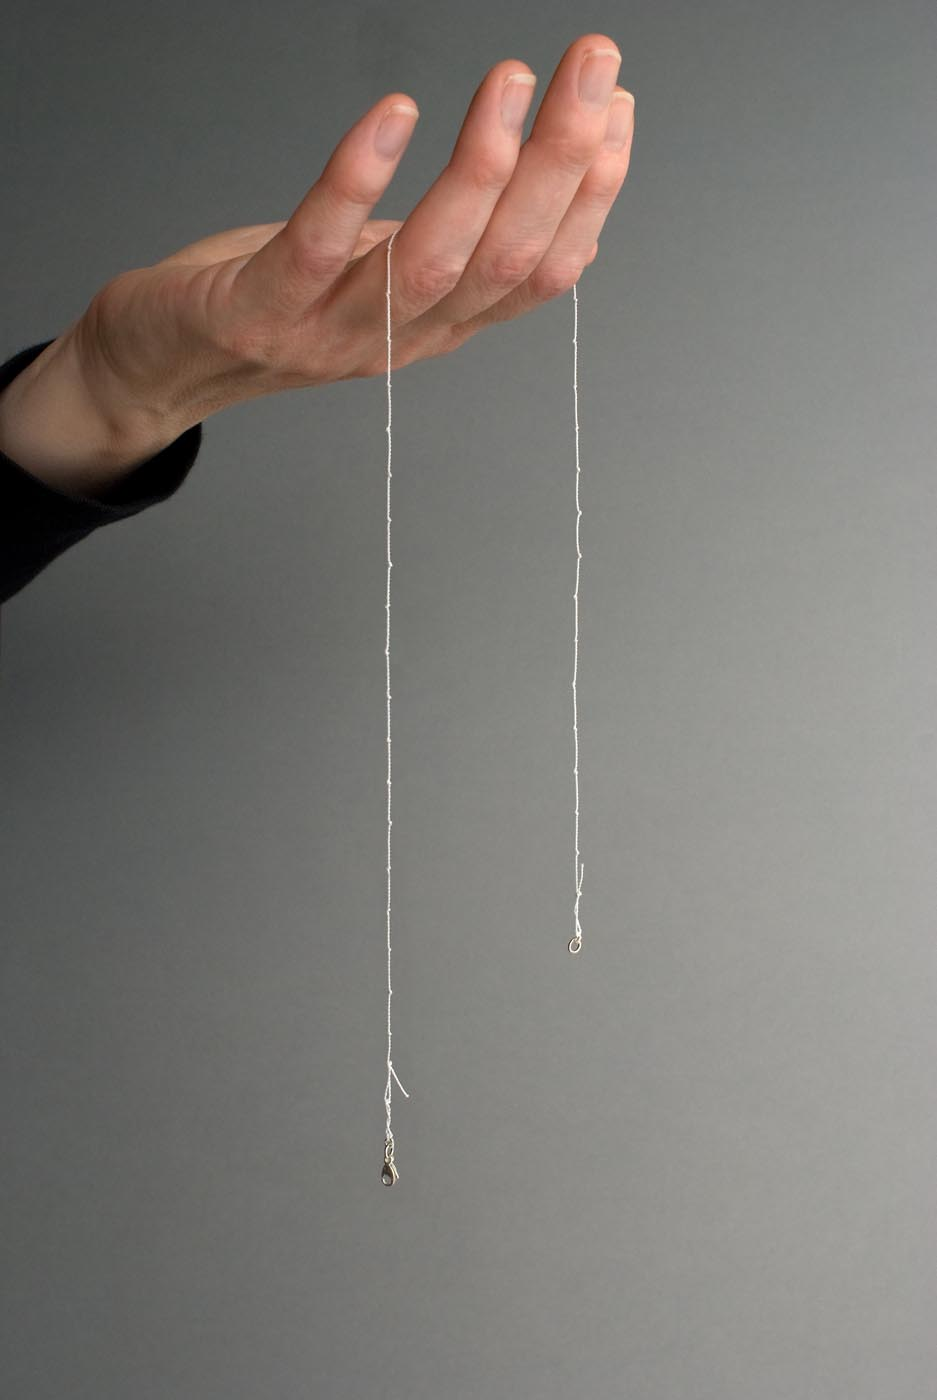 <i>Untitled (Scatter Piece)</i>, 2013, string of pearls without pearls